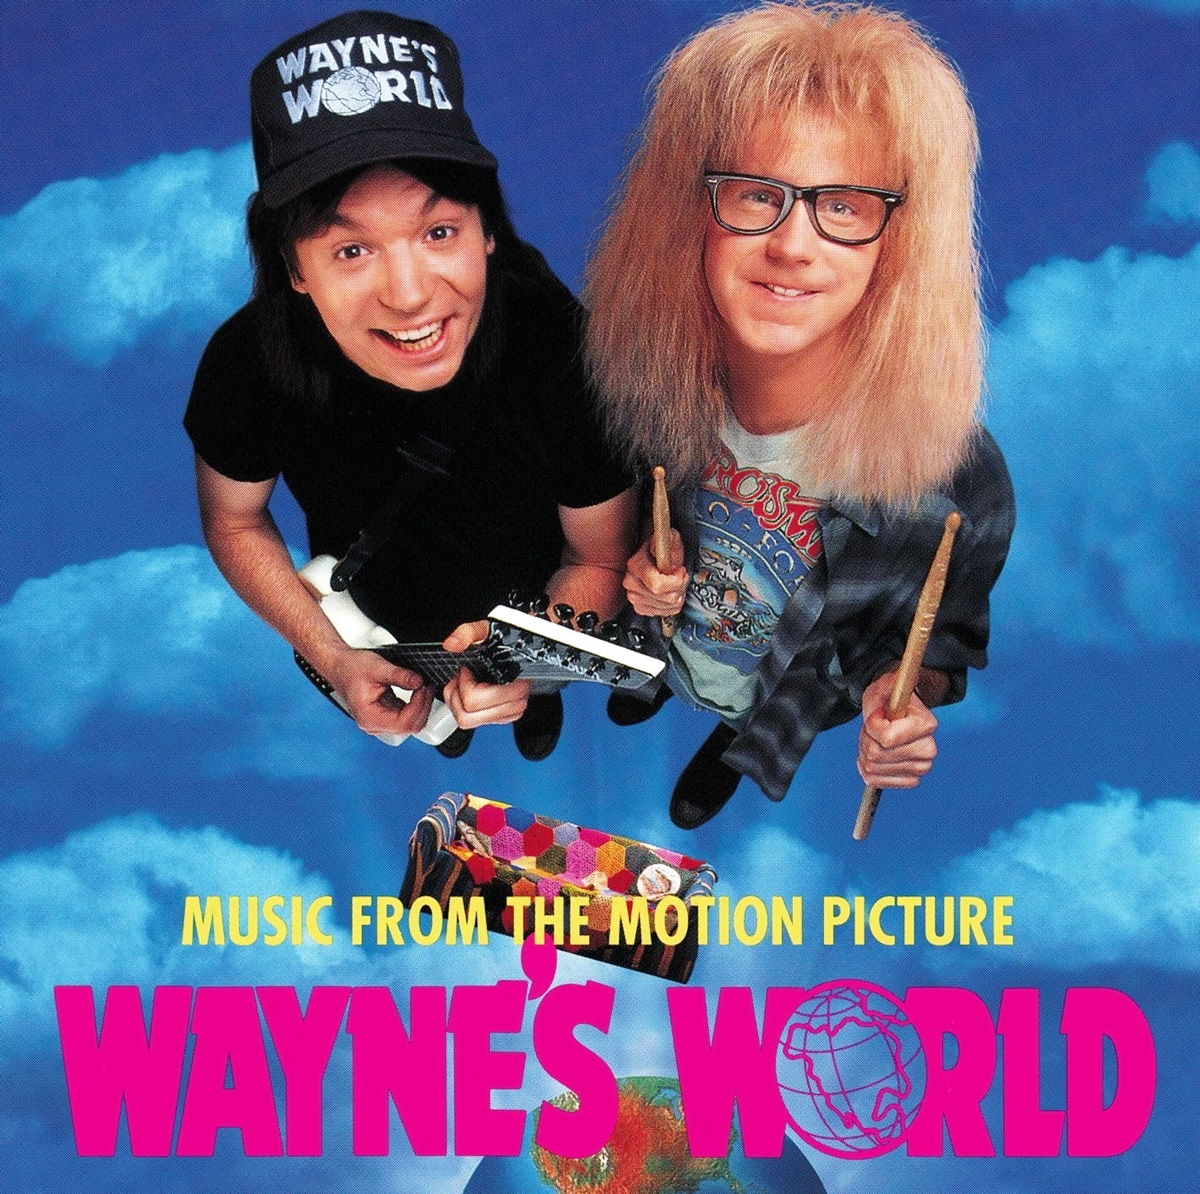 10 9 15 Things You May Not Have Realised About Wayne's World